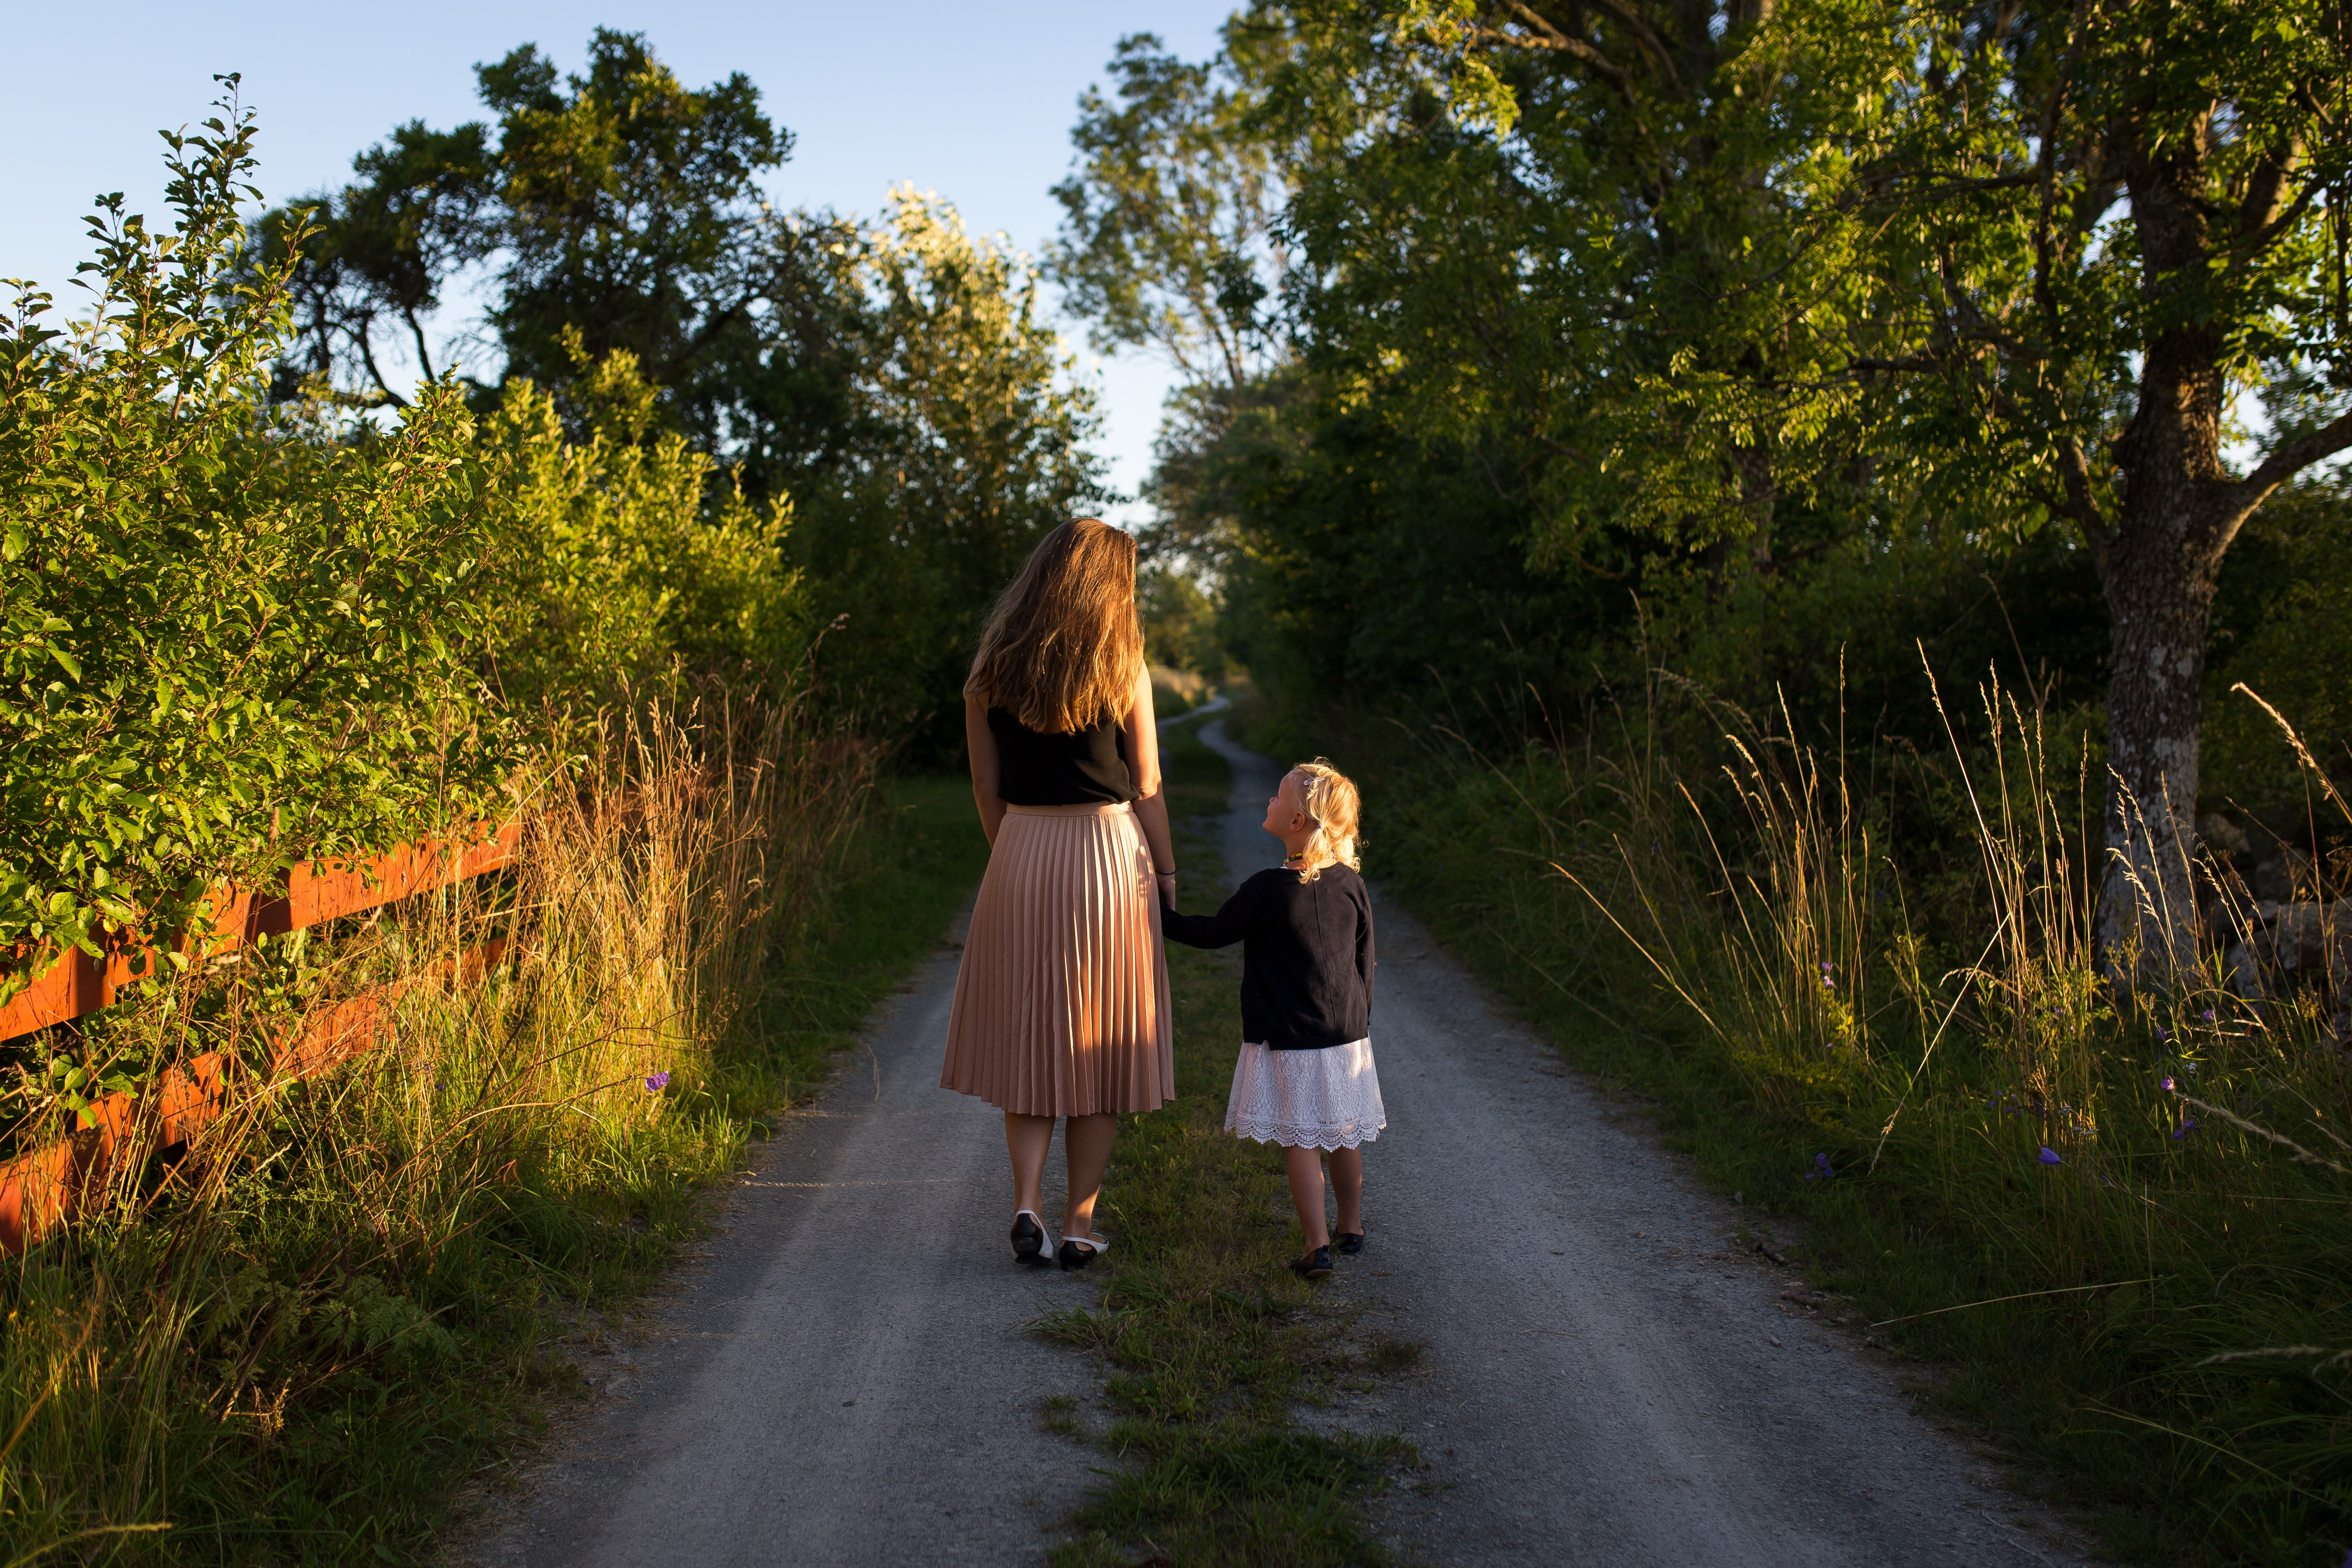 mother and daughter walking on gravel road surrounding by trees and brush